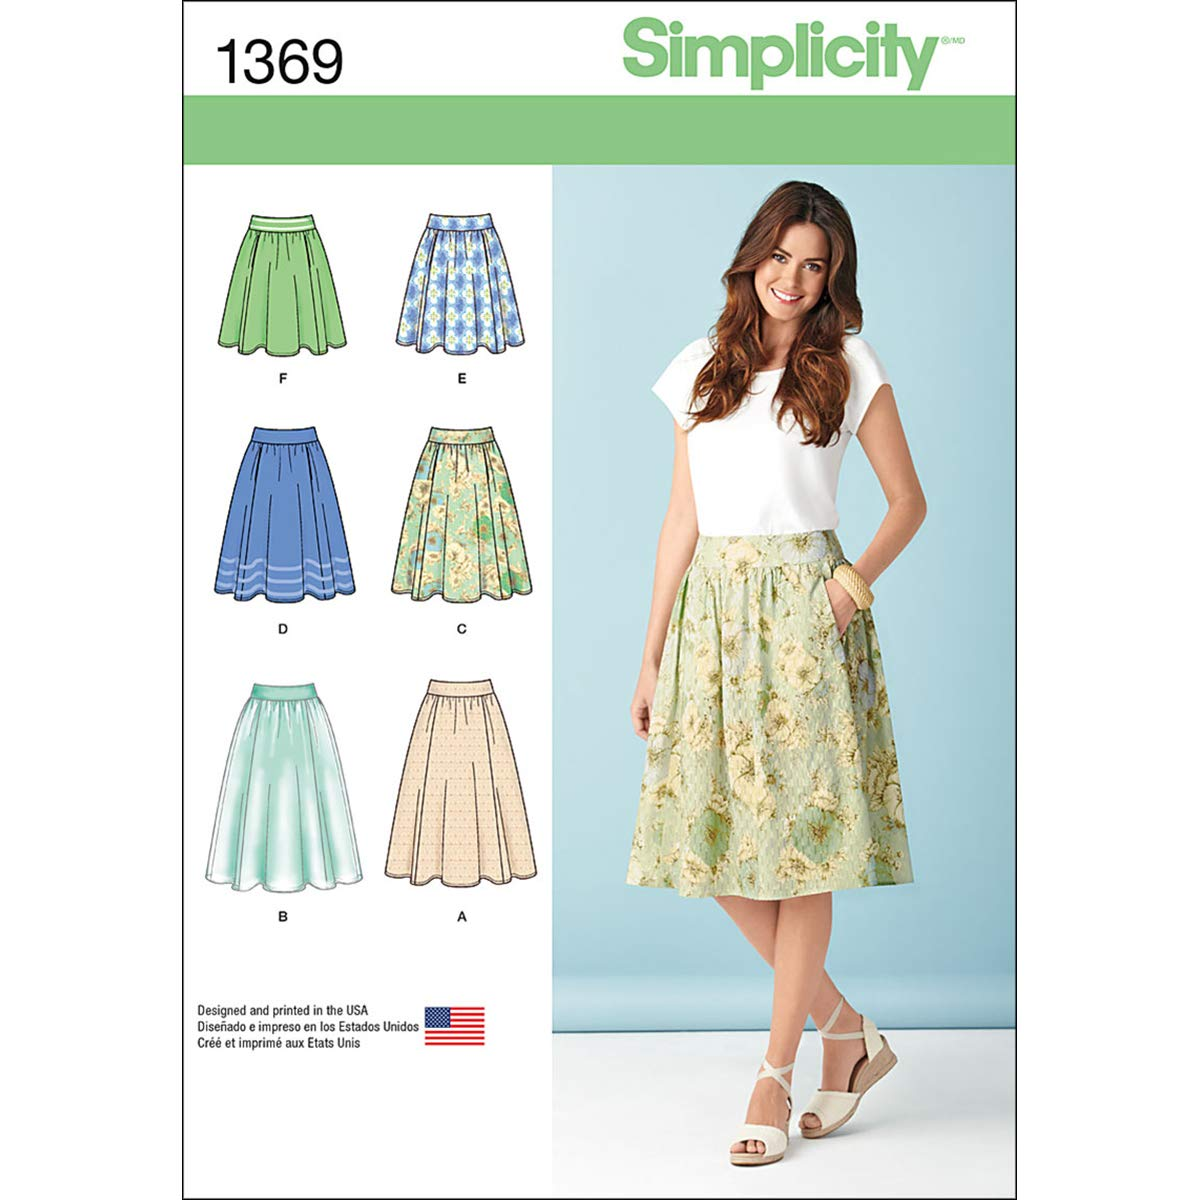 Amazon.com: Simplicity Pattern 1369 Misses Skirt in Three Lengths Sizes  6-8-10-12-14: Arts, Crafts & Sewing